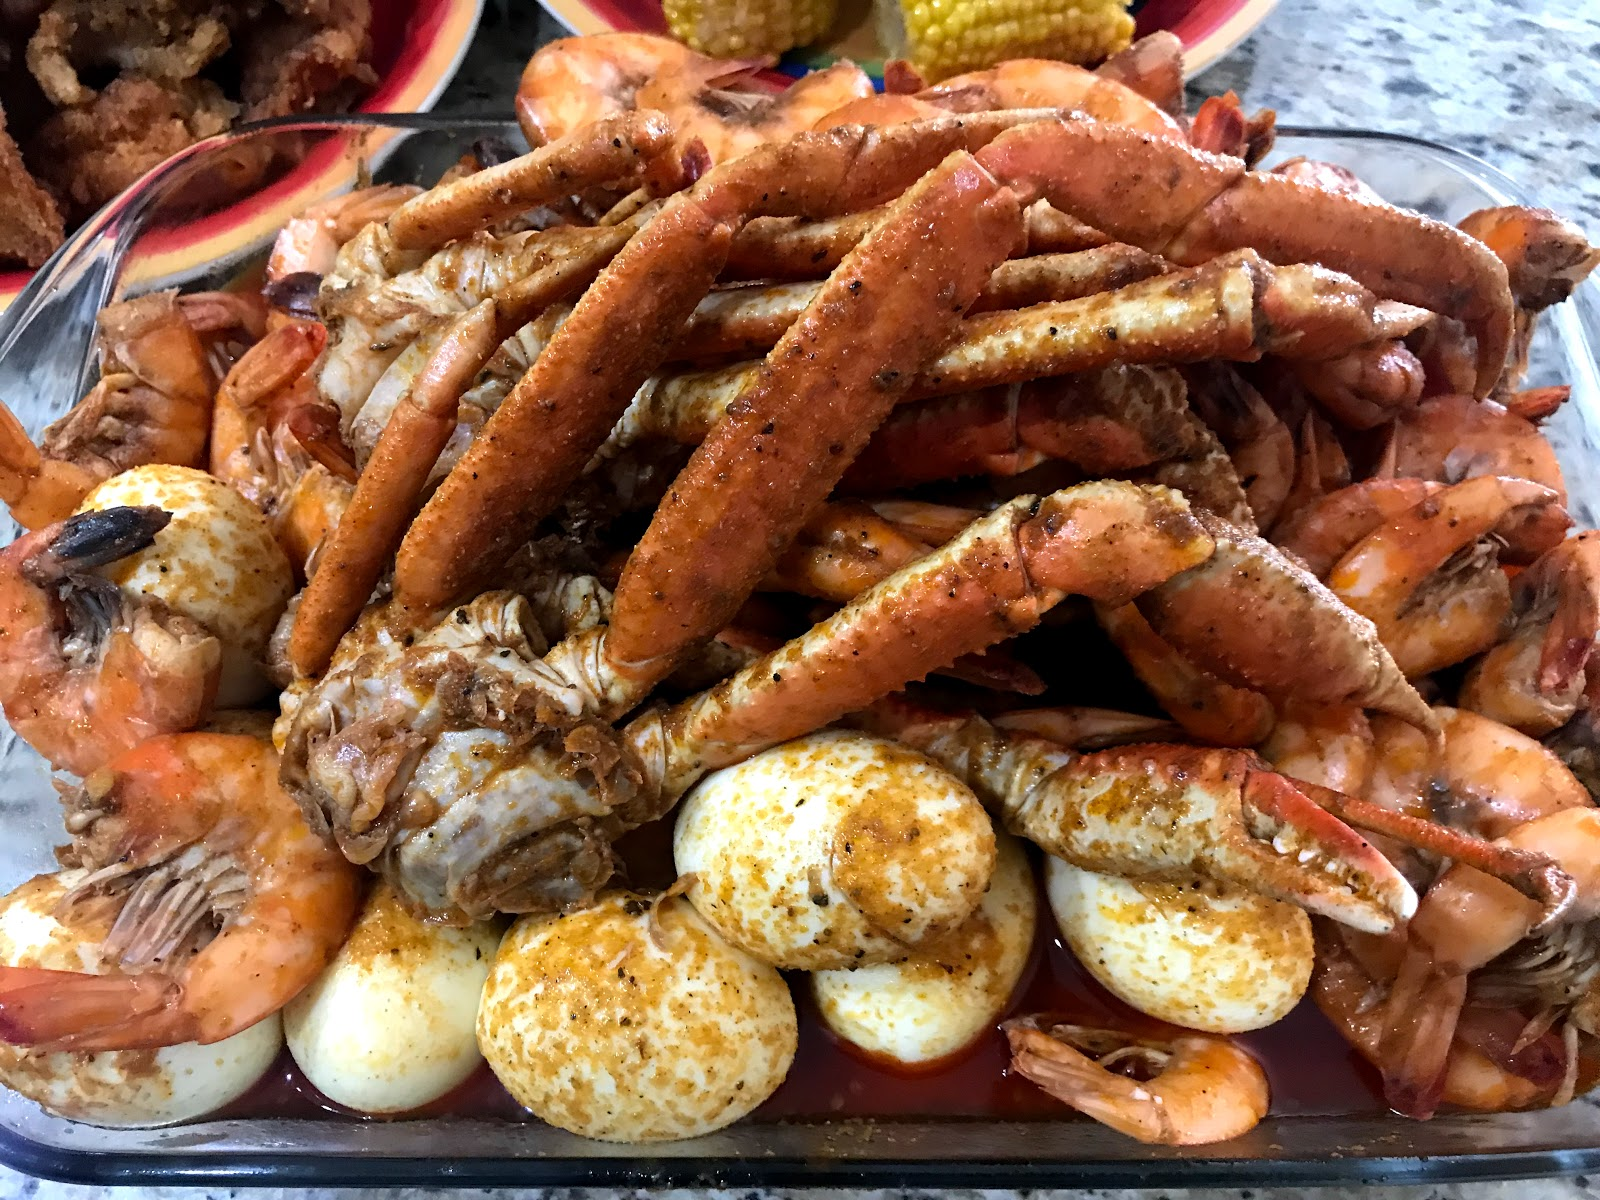 Image: Seafood boil shared by Tangie bell on her blog bits and babbles 5 Things I Learned Last Week While Eating Boiled Eggs, Shrimp, Snow Crabs & Fried Cat Fish